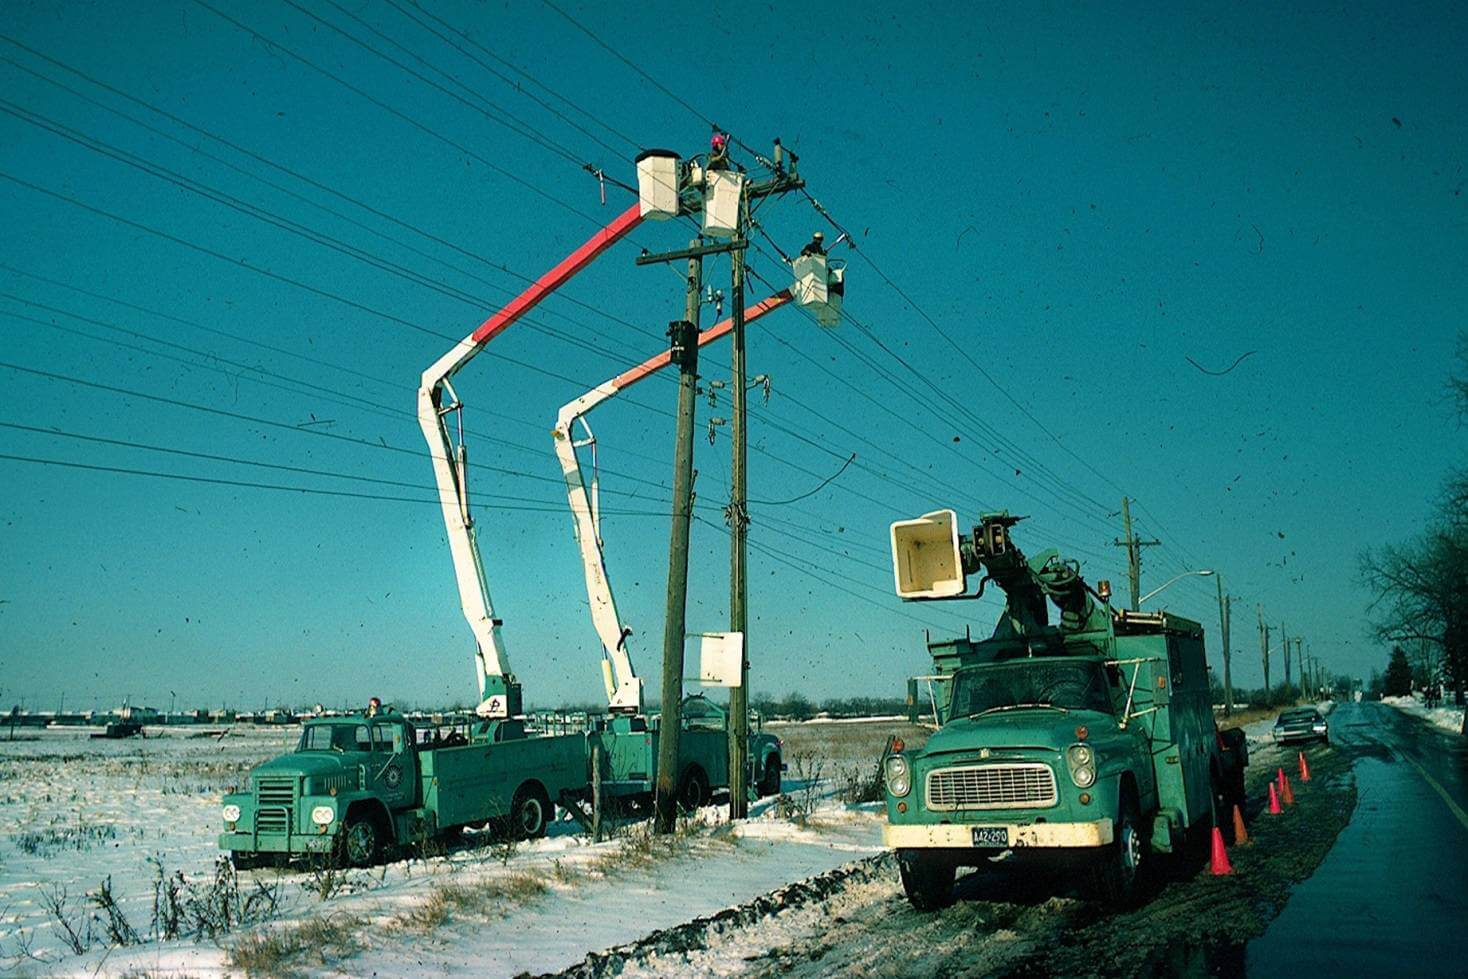 Utility workers working on roadside lines